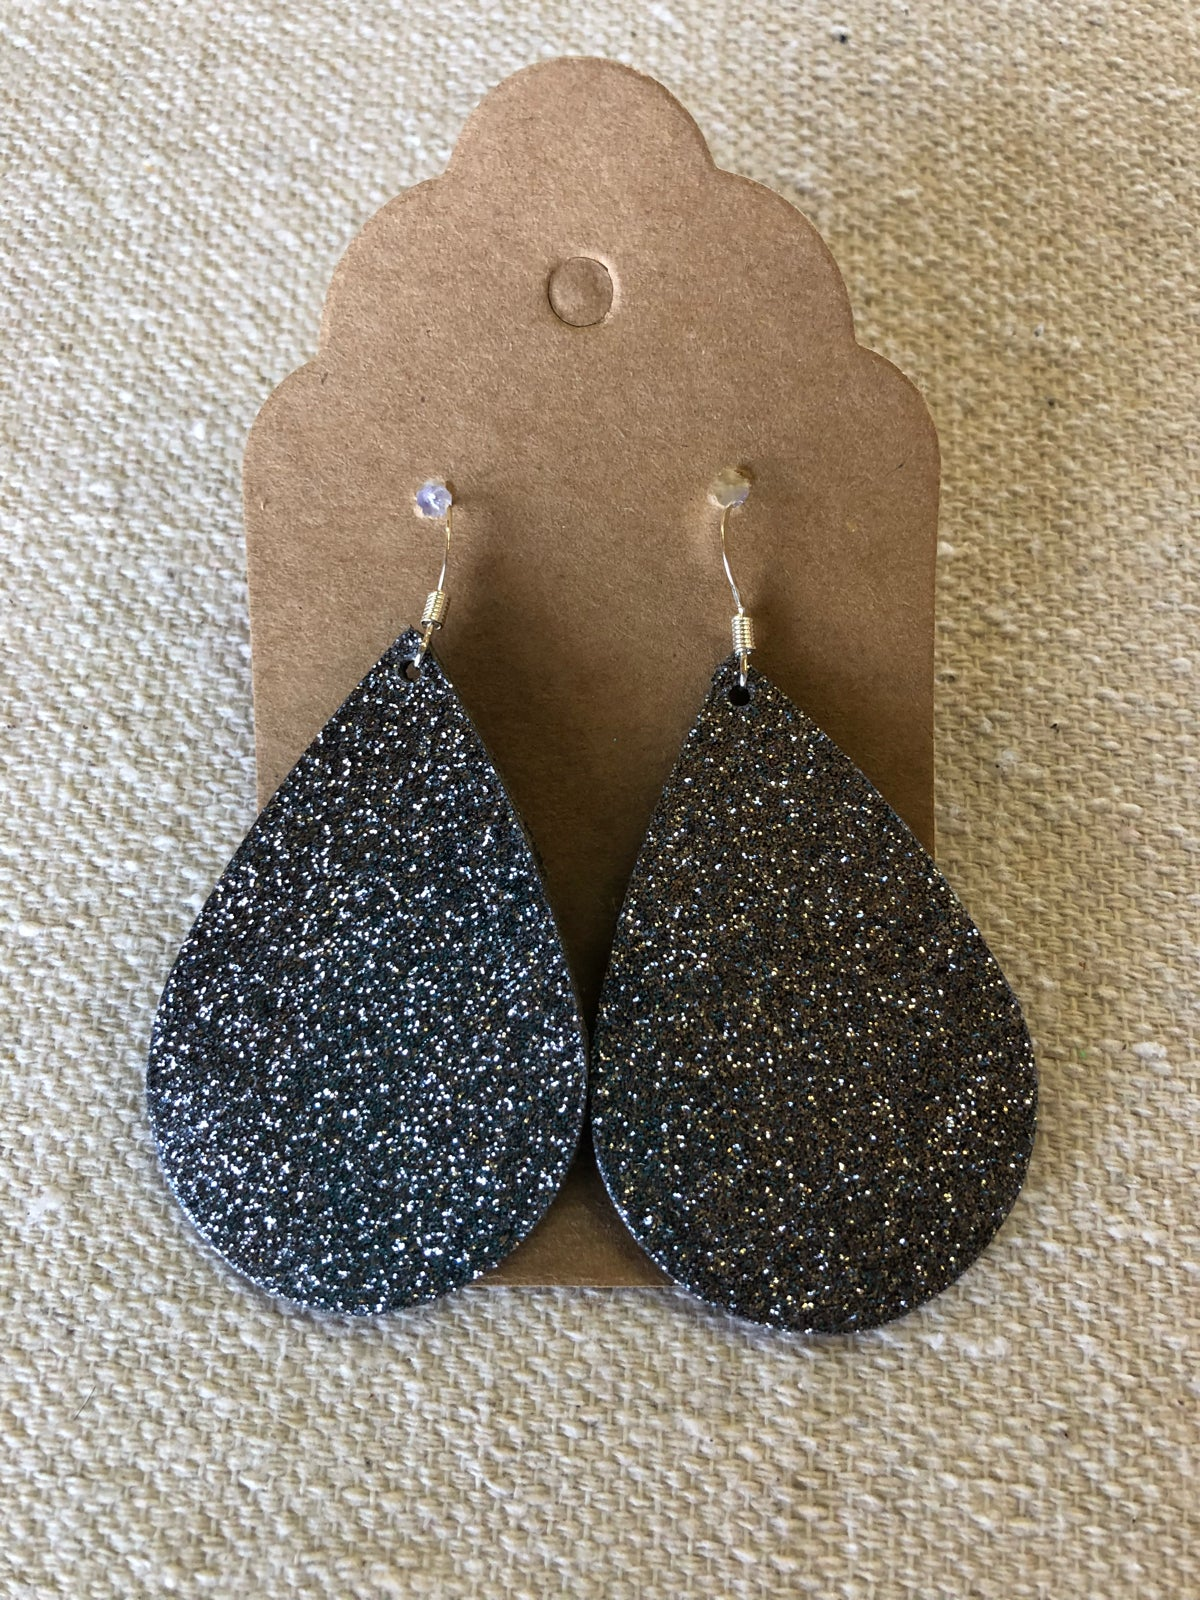 Image of Leather Earrings - Gunmetal Glitter Teardrops